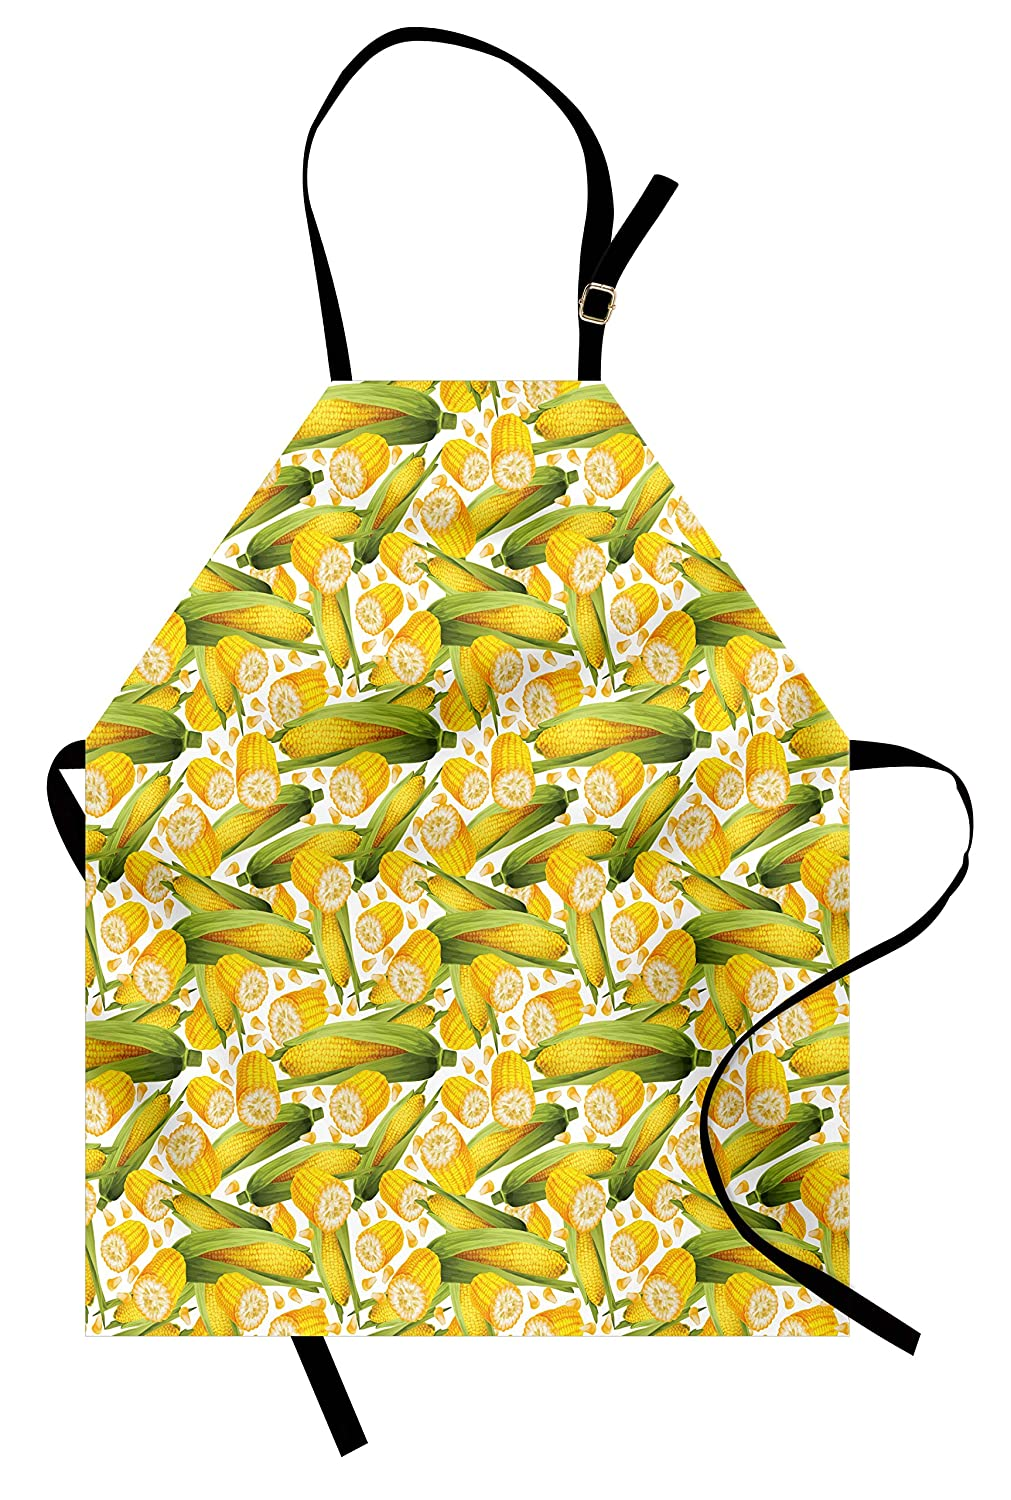 Ambesonne Corn Apron, Vegetable Organic Food Realistic Illustration Yellow Corn Stalks Agriculture, Unisex Kitchen Bib Apron with Adjustable Neck for Cooking Baking Gardening, Yellow Green White